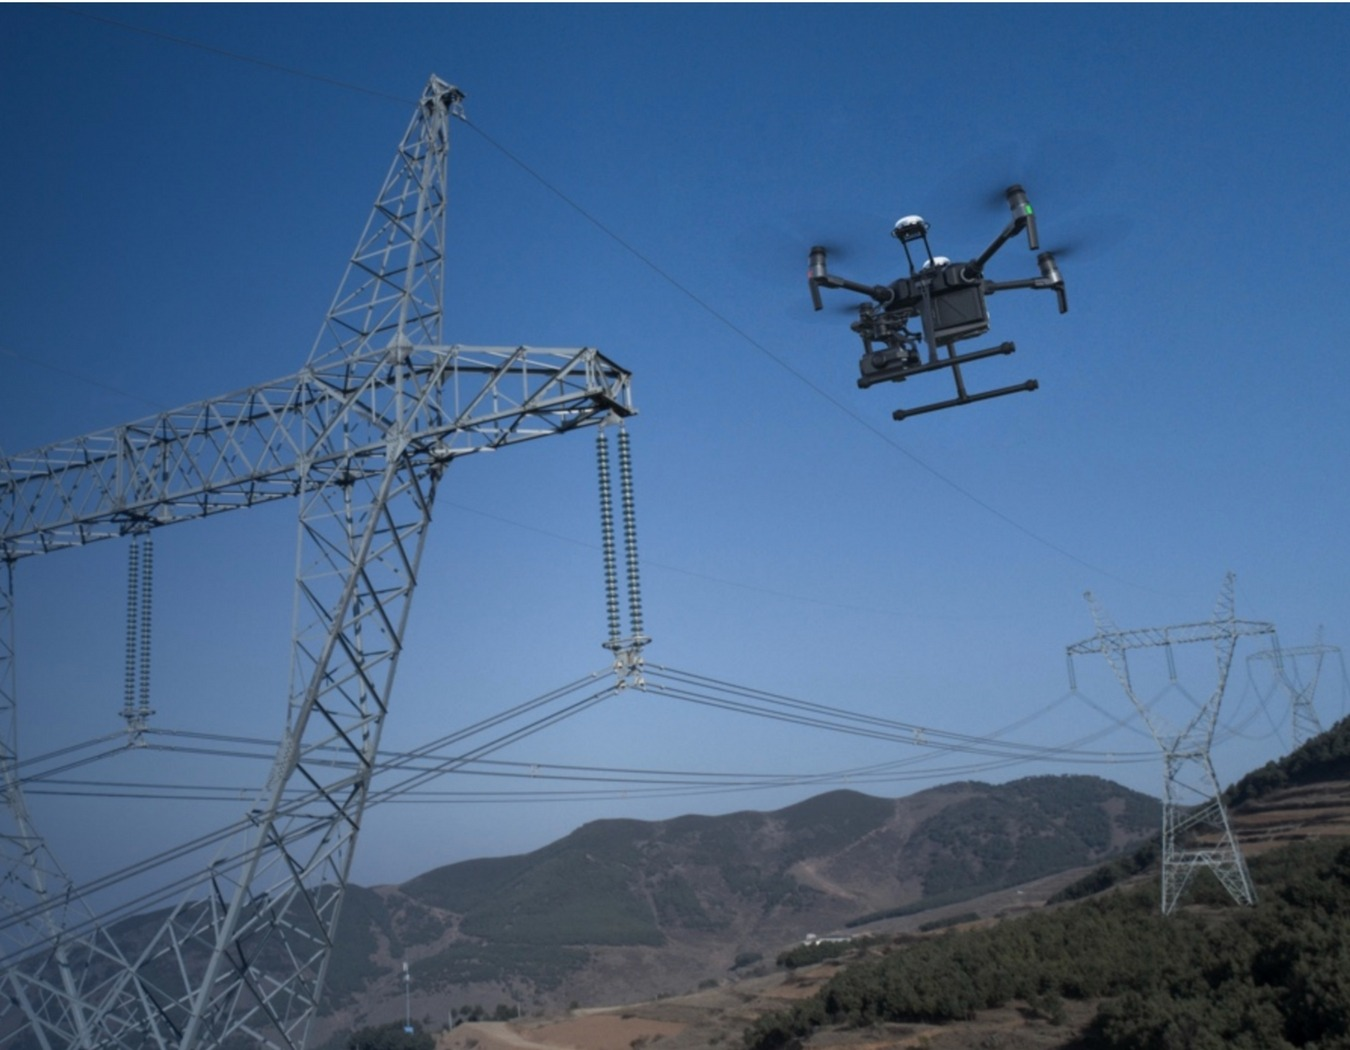 DJI Matrice 200 Series Power Line Inspections